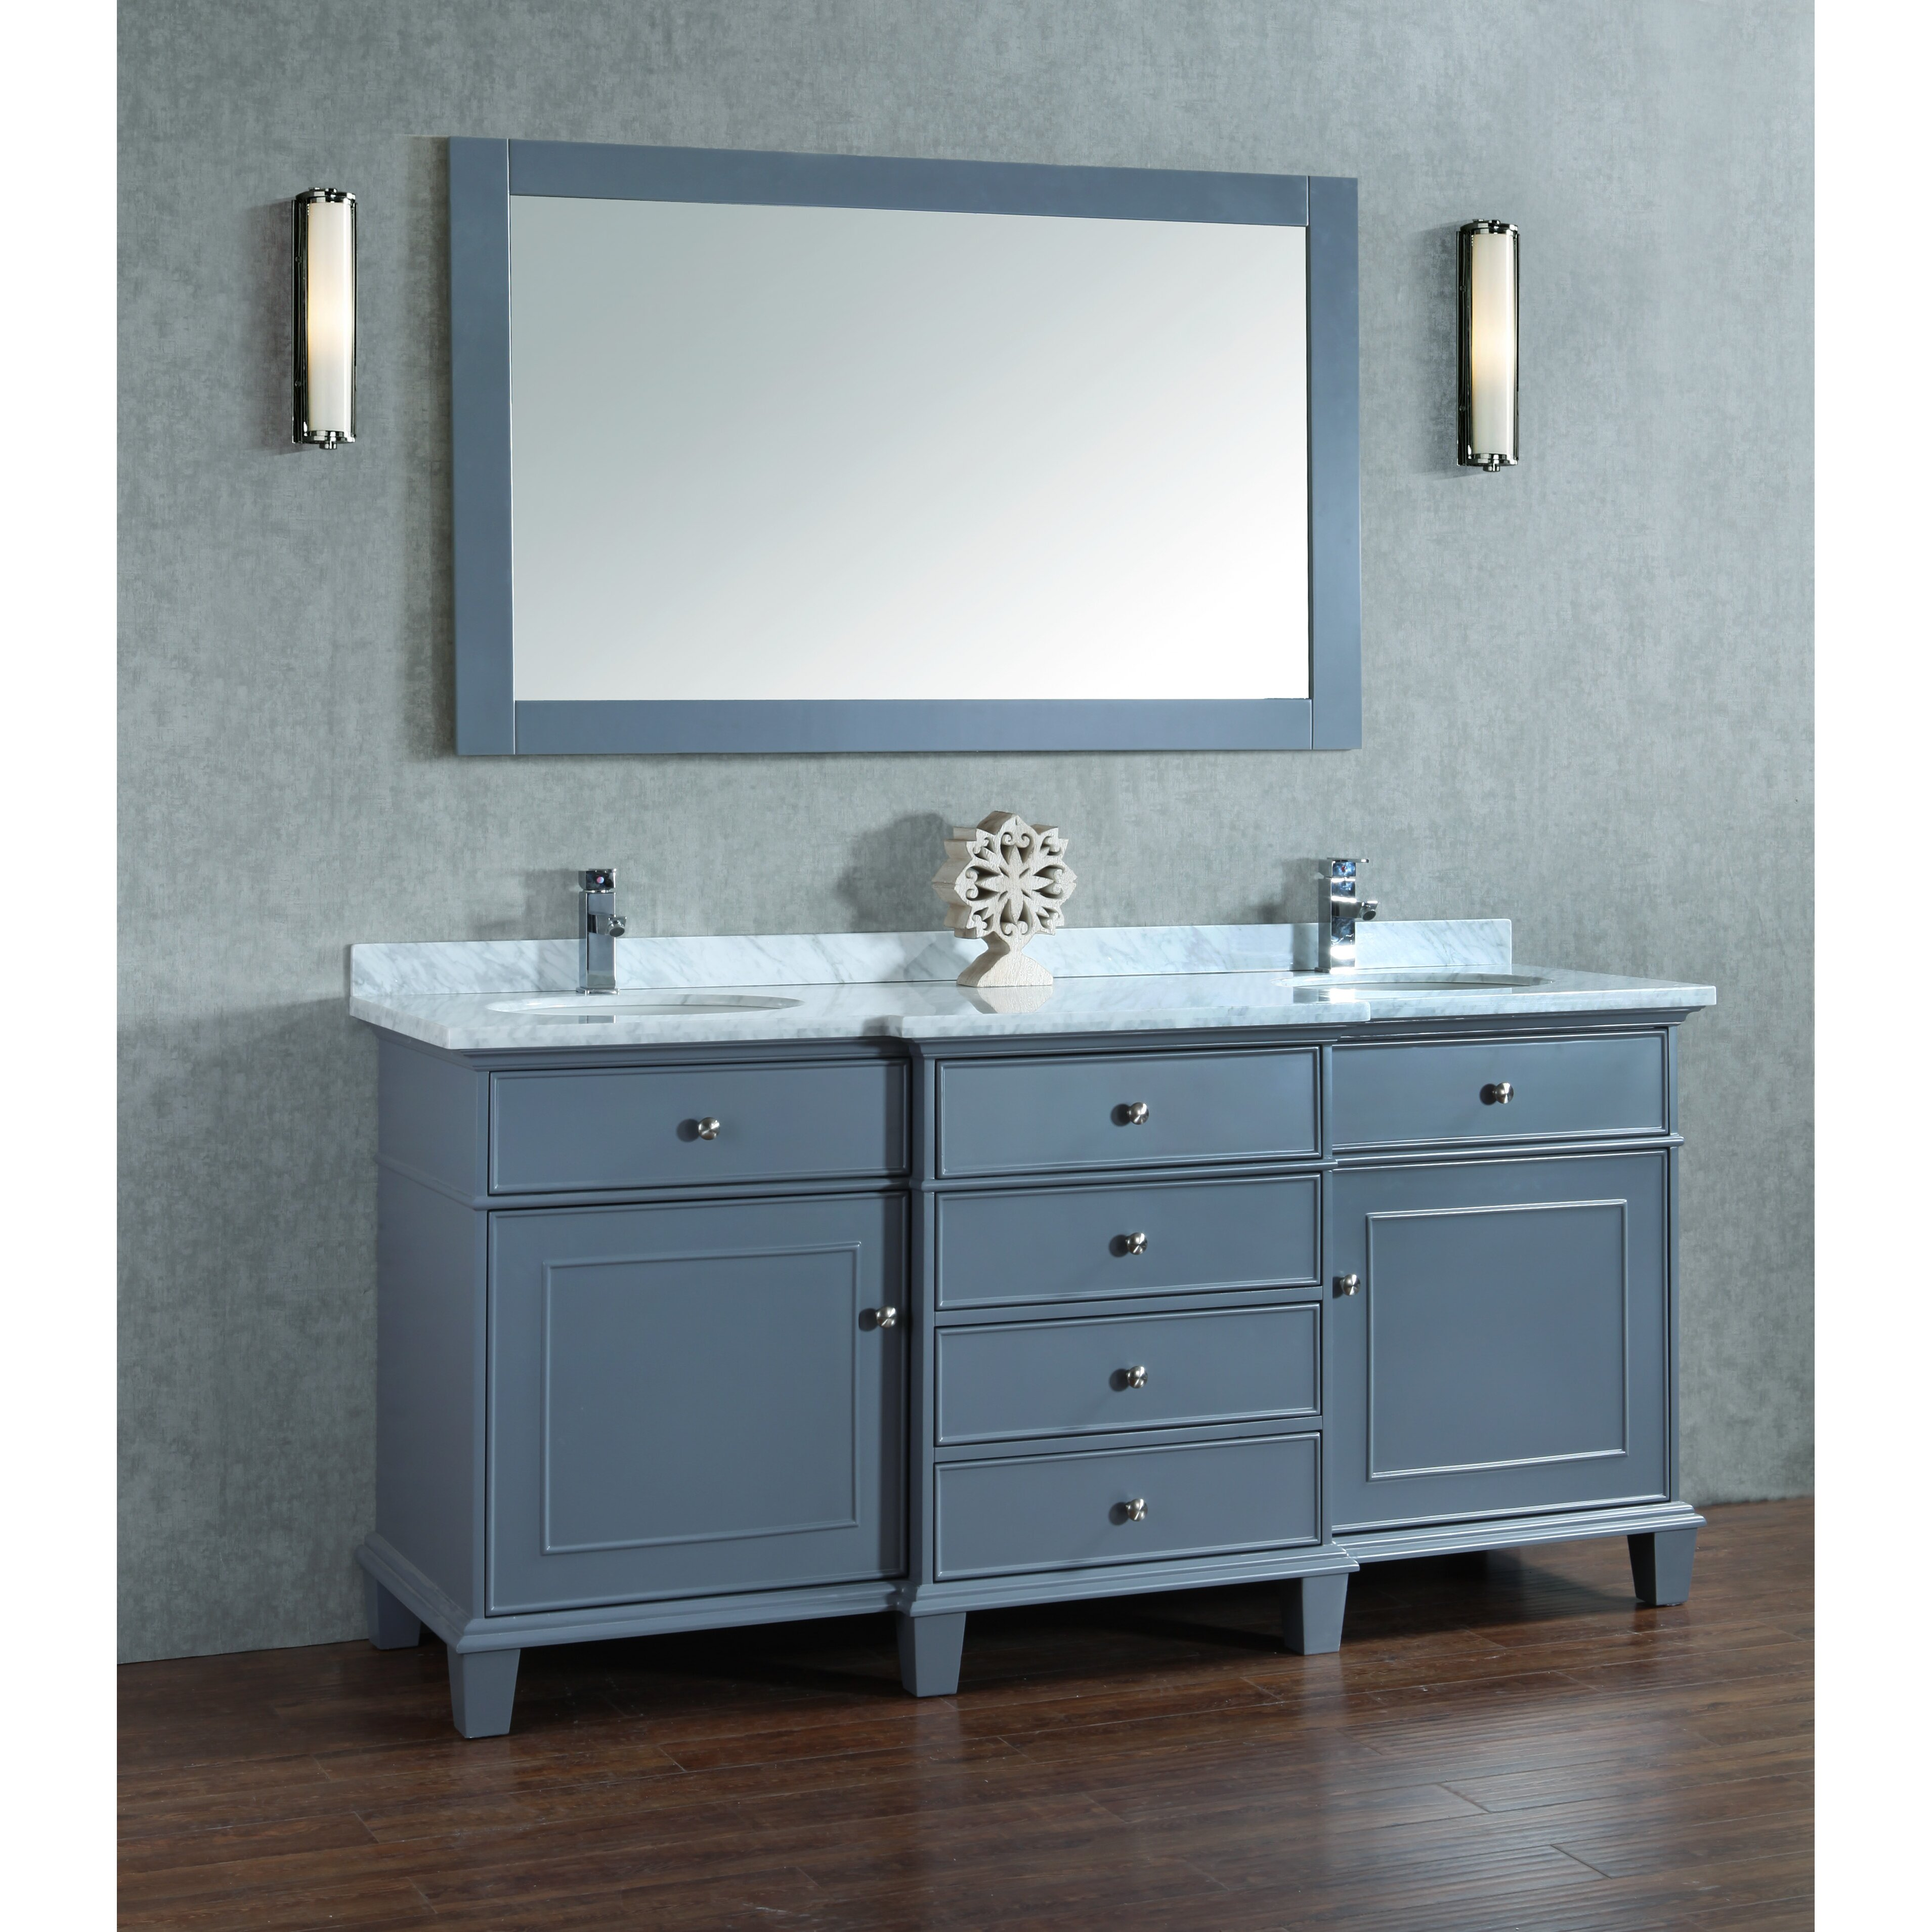 Dcor design melton 72 double sink bathroom vanity set - 72 inch bathroom vanity double sink ...